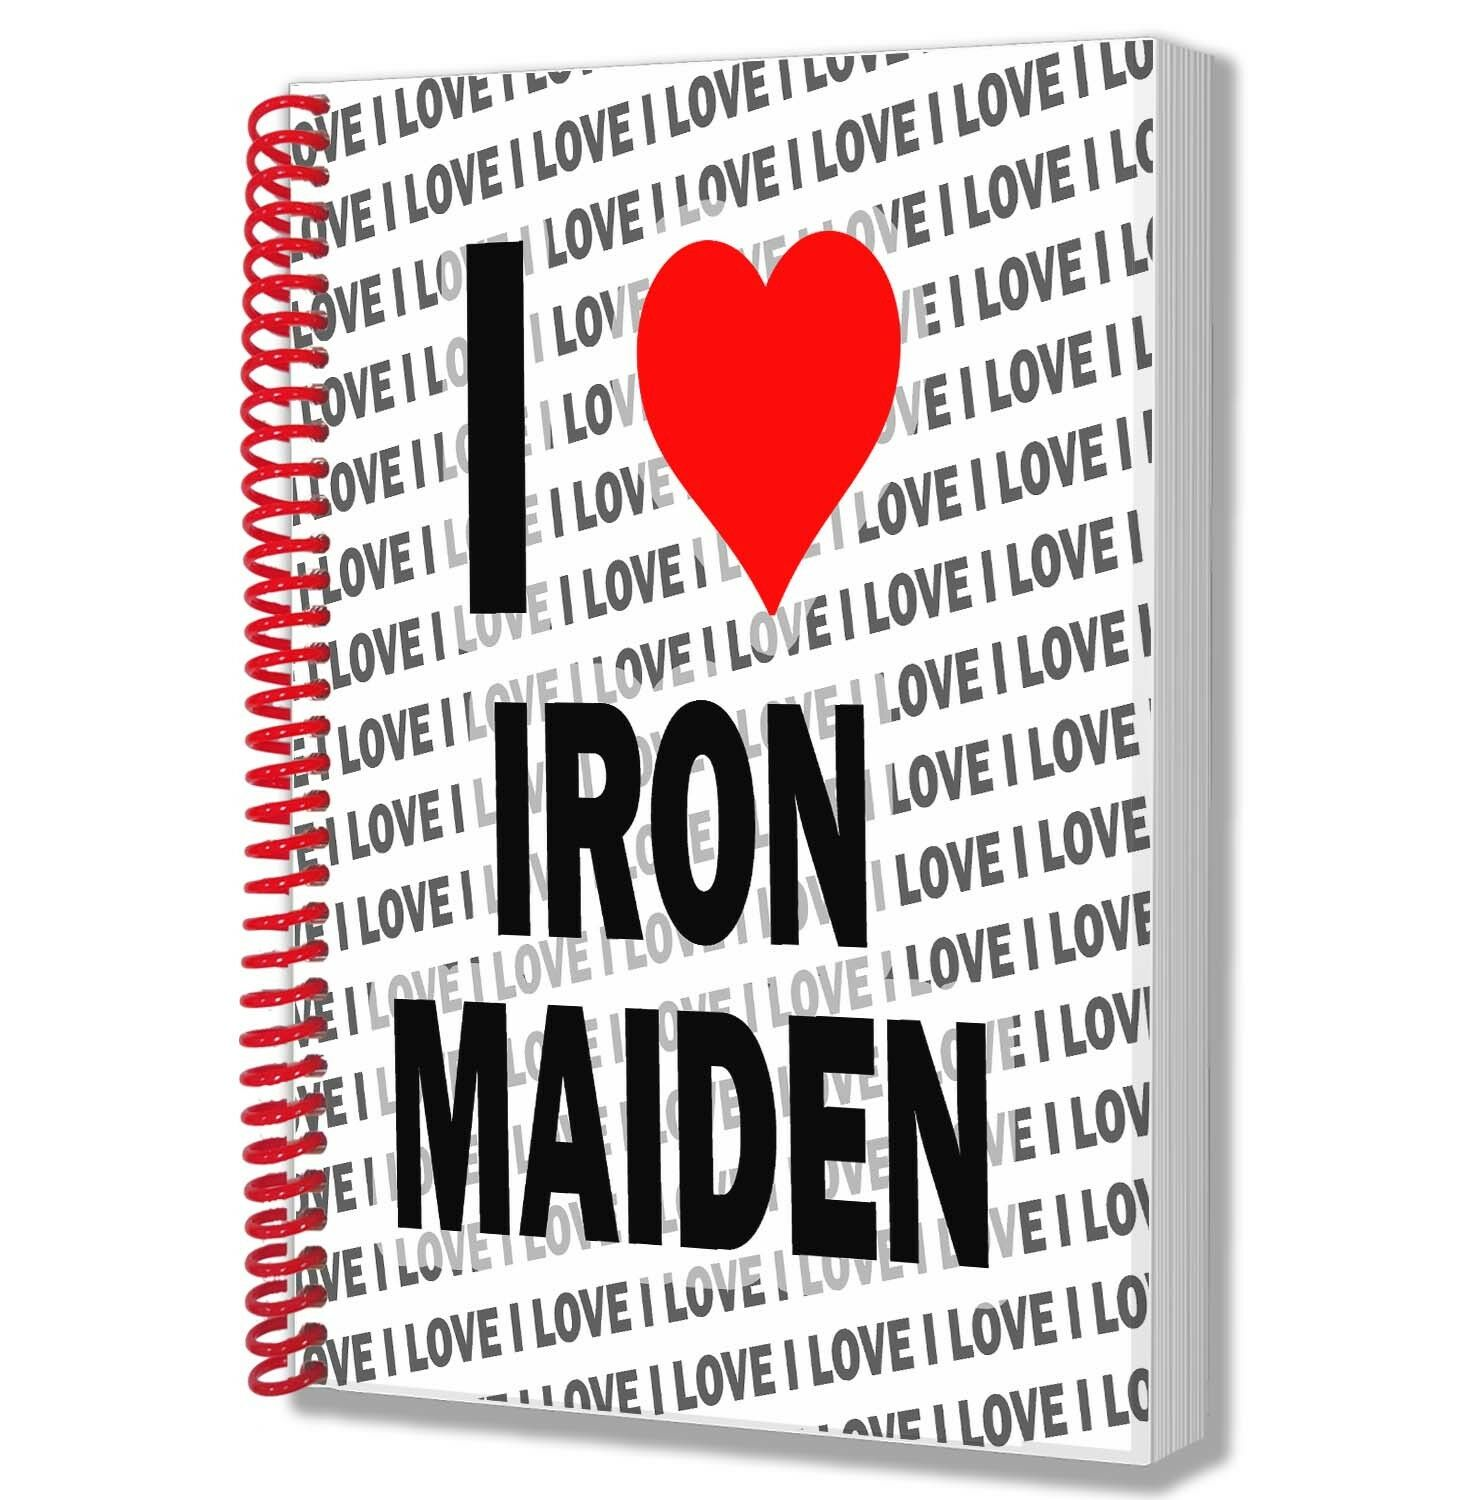 I LOVE IRON Maiden - A5 Notebook Pad Diary Drawings Birthday ...